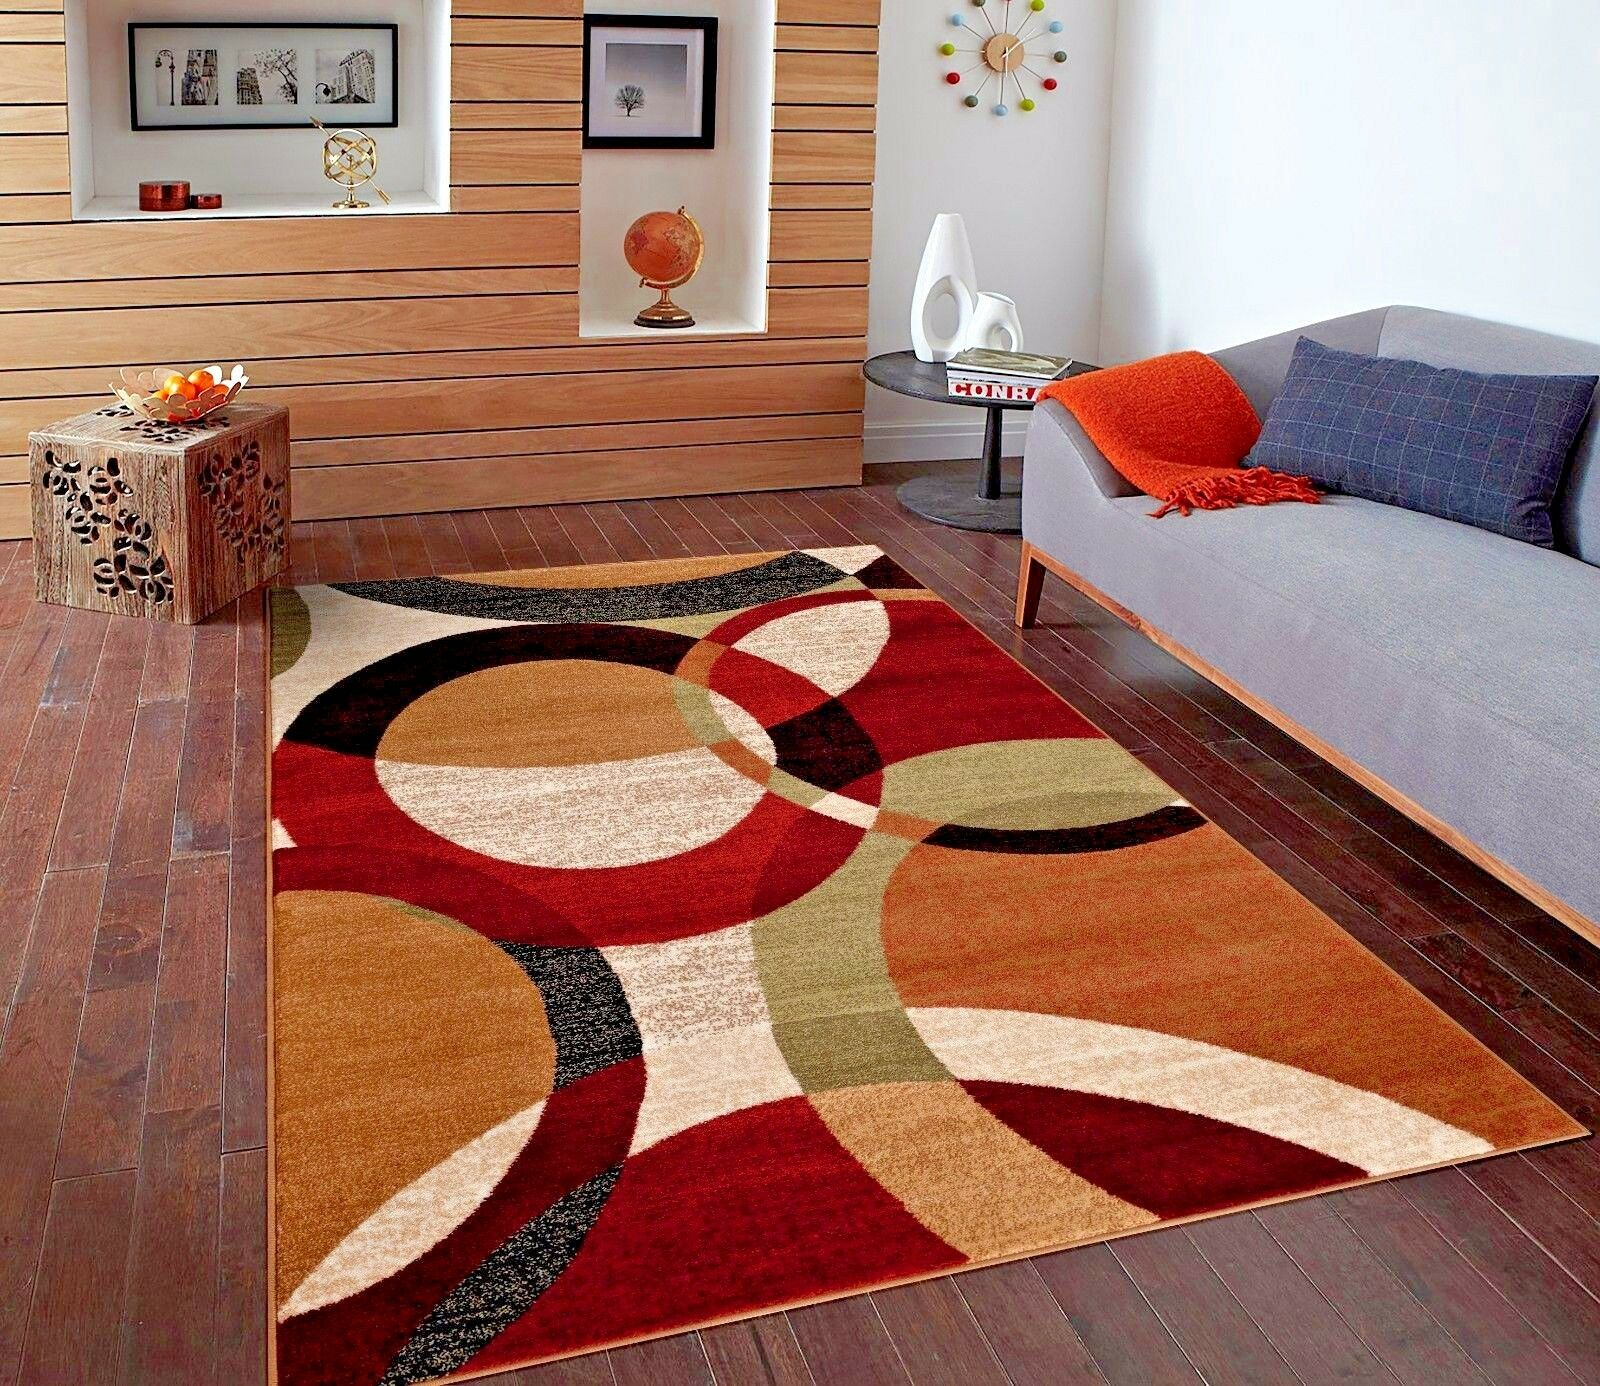 Rugs area rugs 8x10 area rug carpet modern rugs large area rugs living room new ebay How to buy an area rug for living room